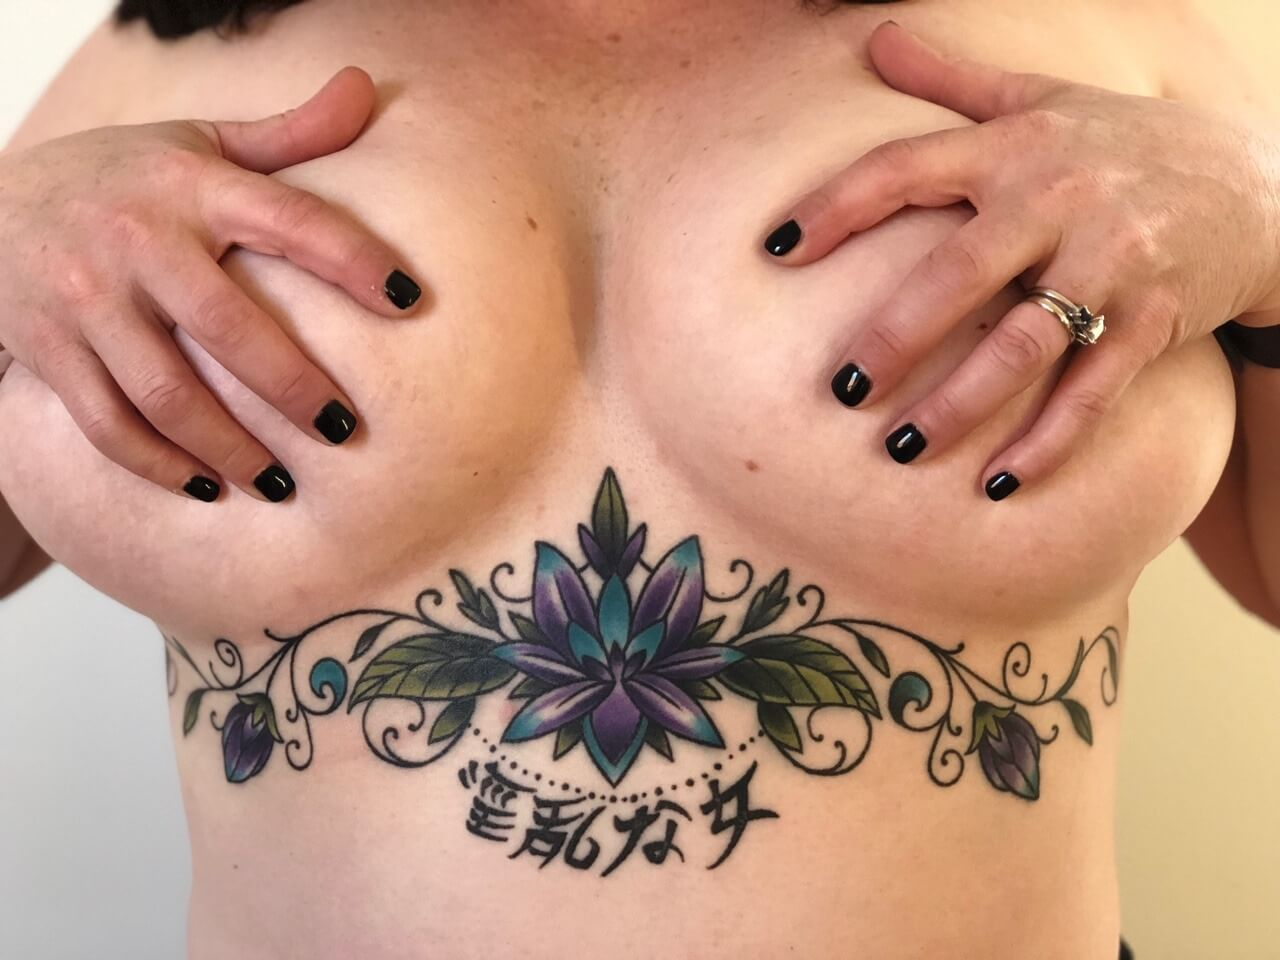 Tattoo florales Underboob Tattoo